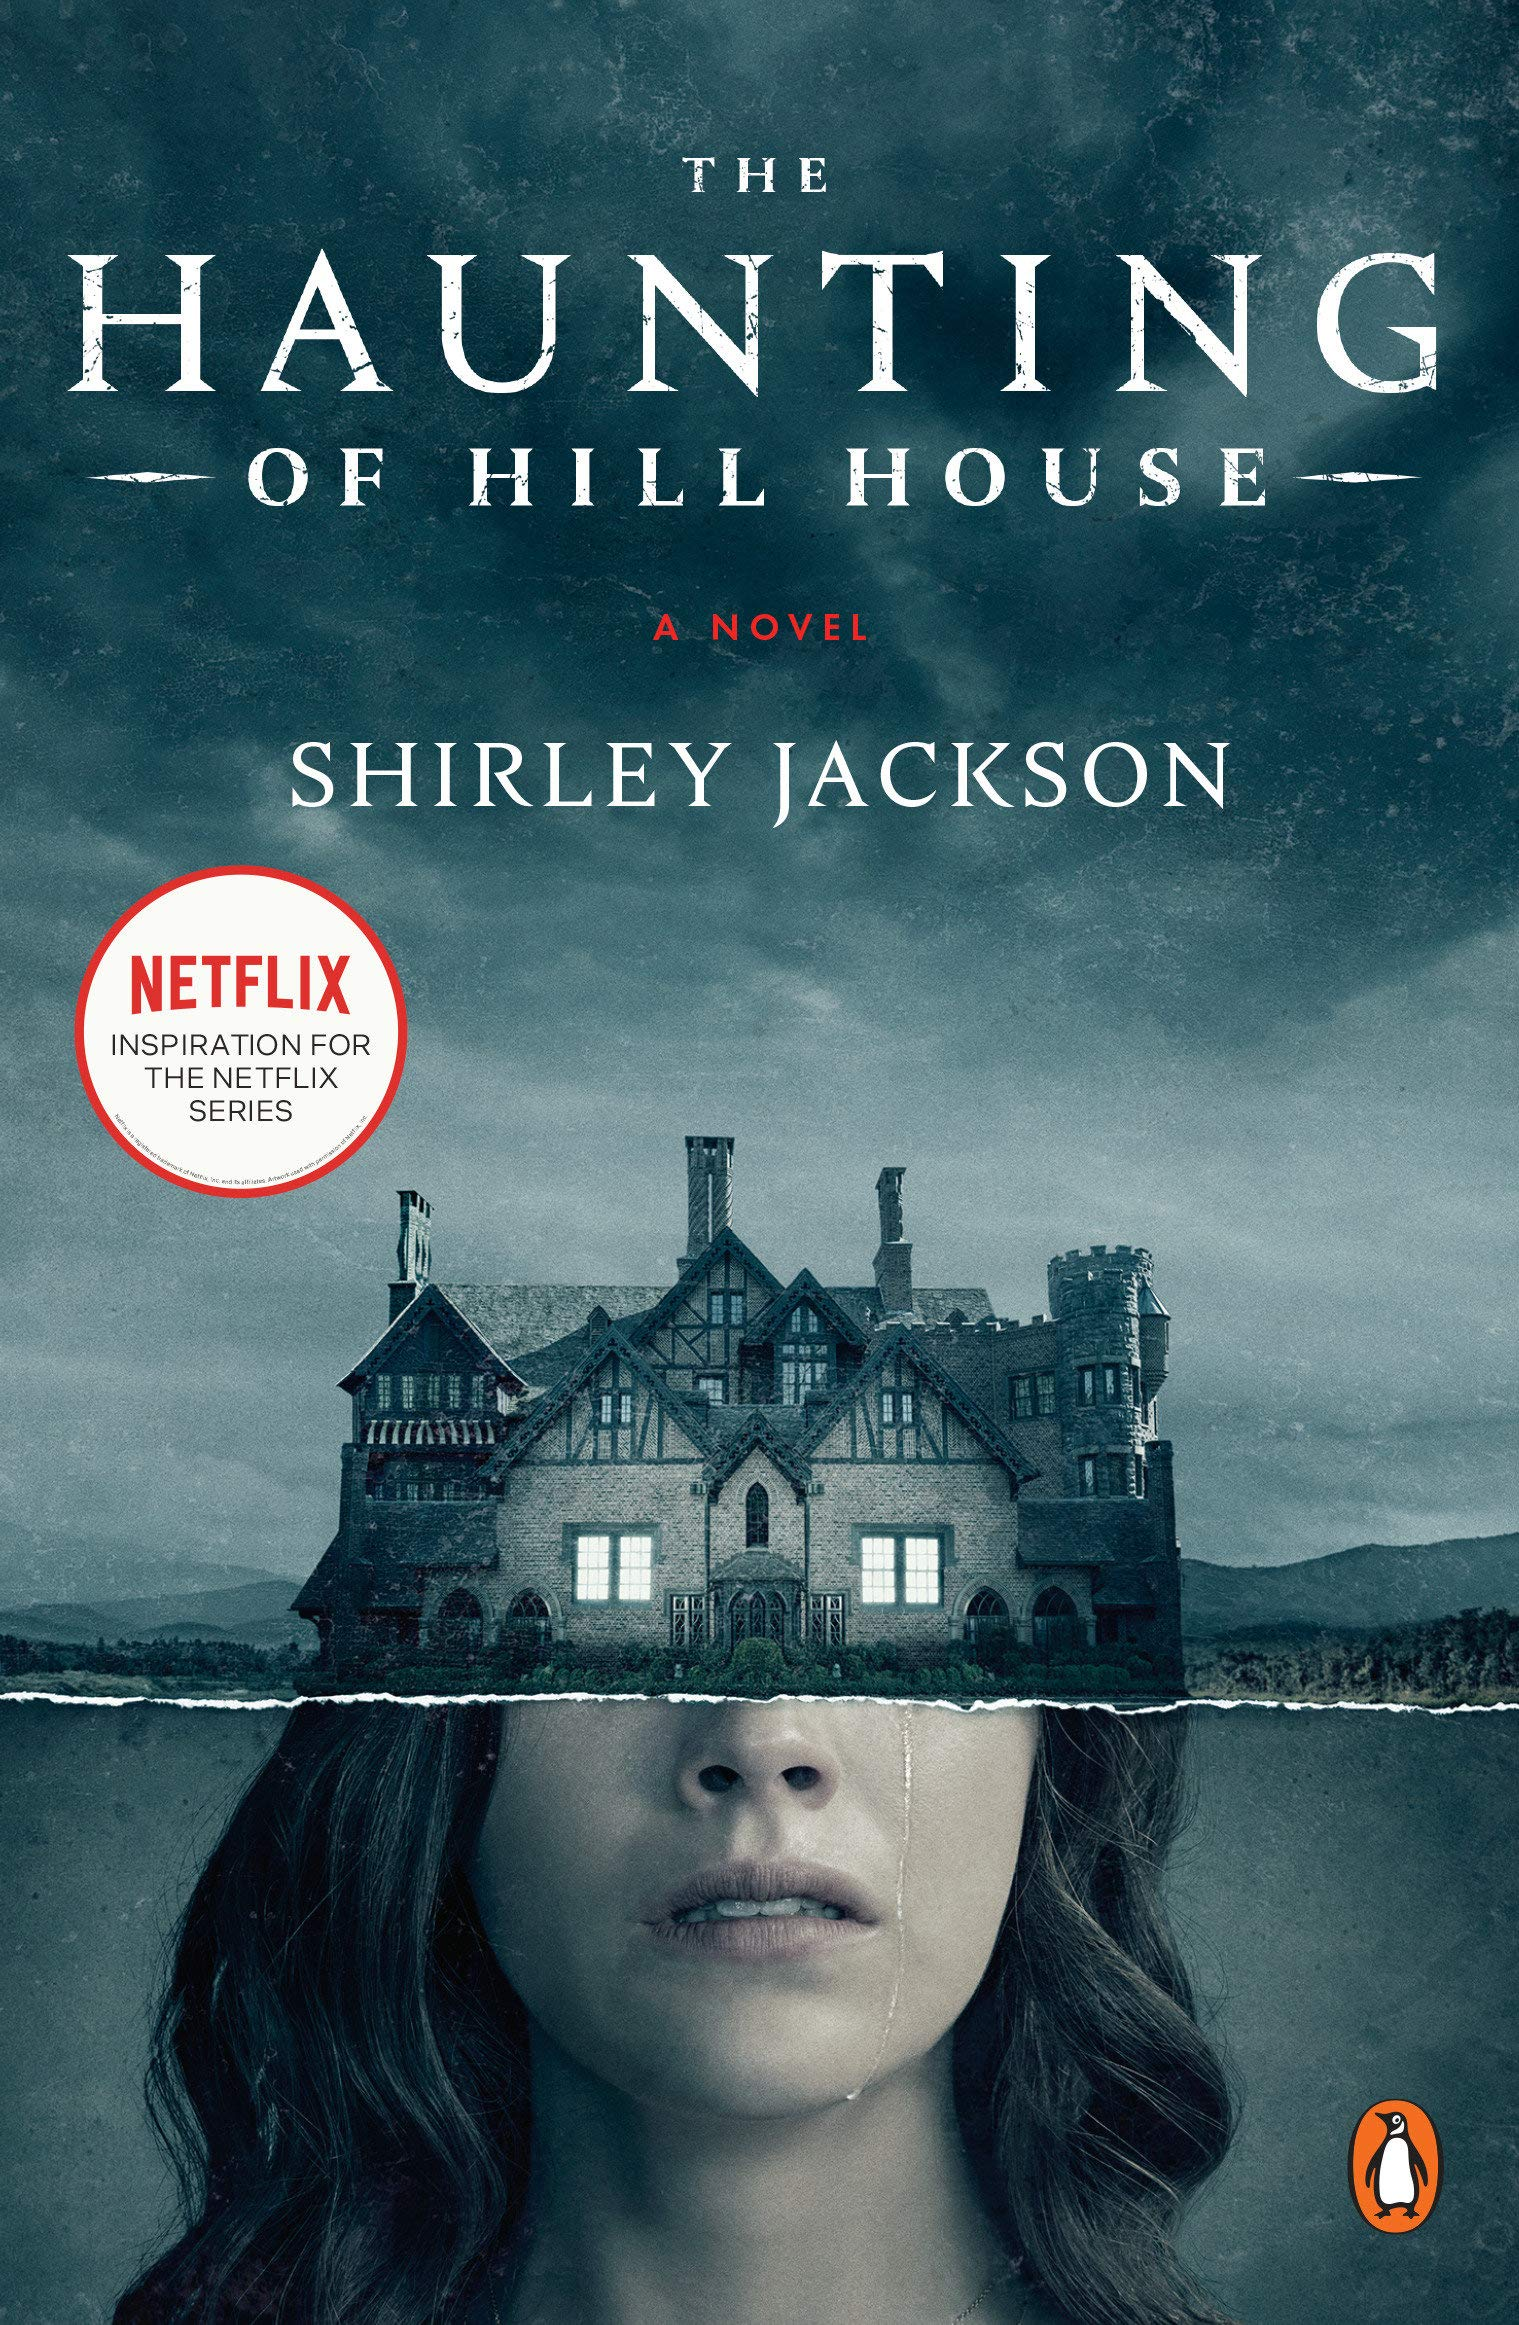 The Haunting Of Hill House Movie Tie In Amazon Co Uk Jackson Shirley 9780143134190 Books